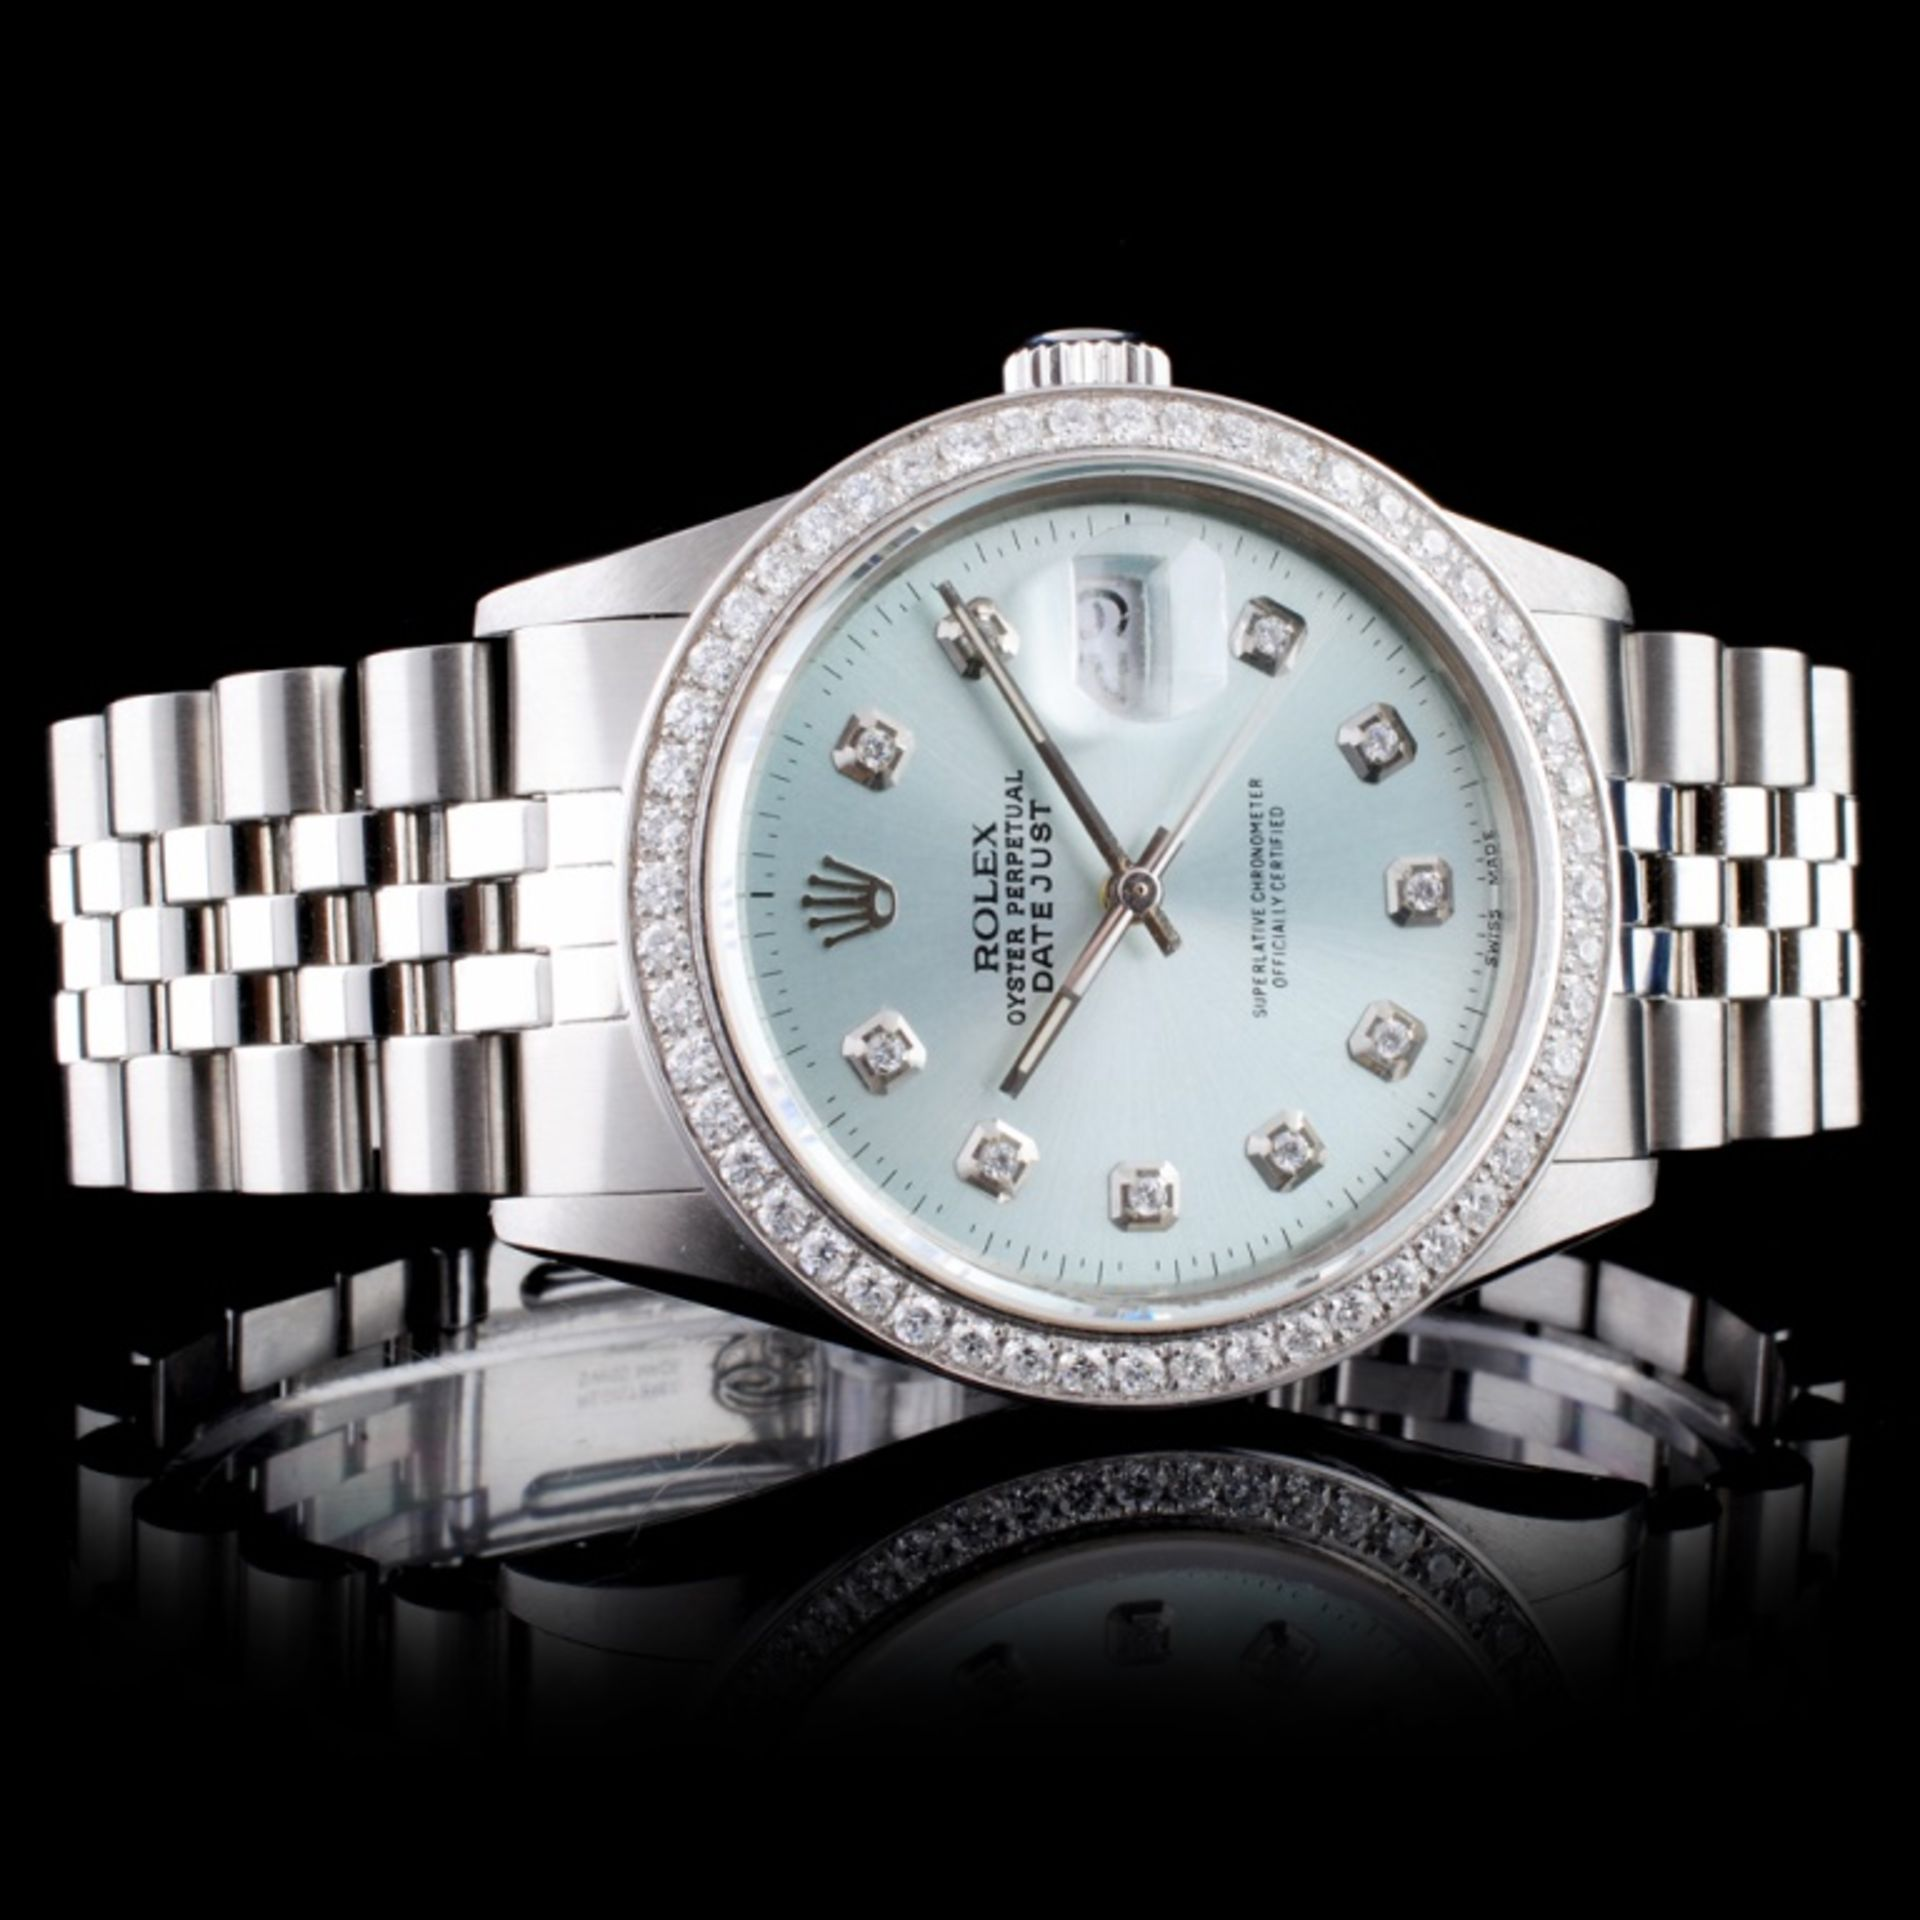 Rolex SS DateJust Diamond 36mm Wristwatch - Image 2 of 6